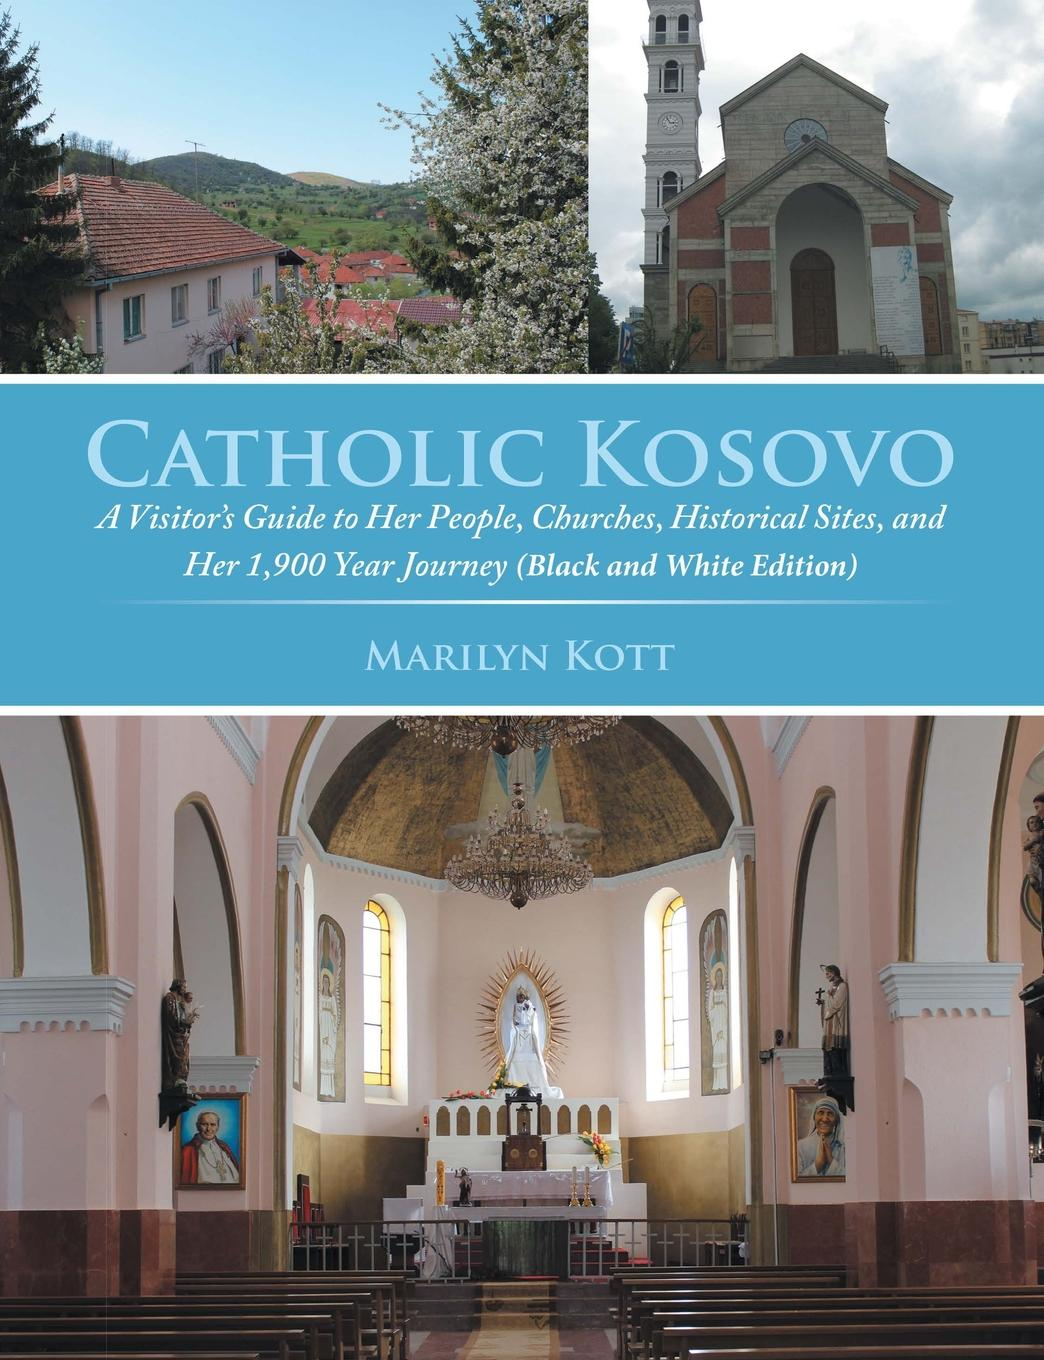 где купить Marilyn Kott Catholic Kosovo. A Visitor.s Guide to Her People, Churches, Historical Sites, and Her 1,900 Year Journey (in Black . White) по лучшей цене